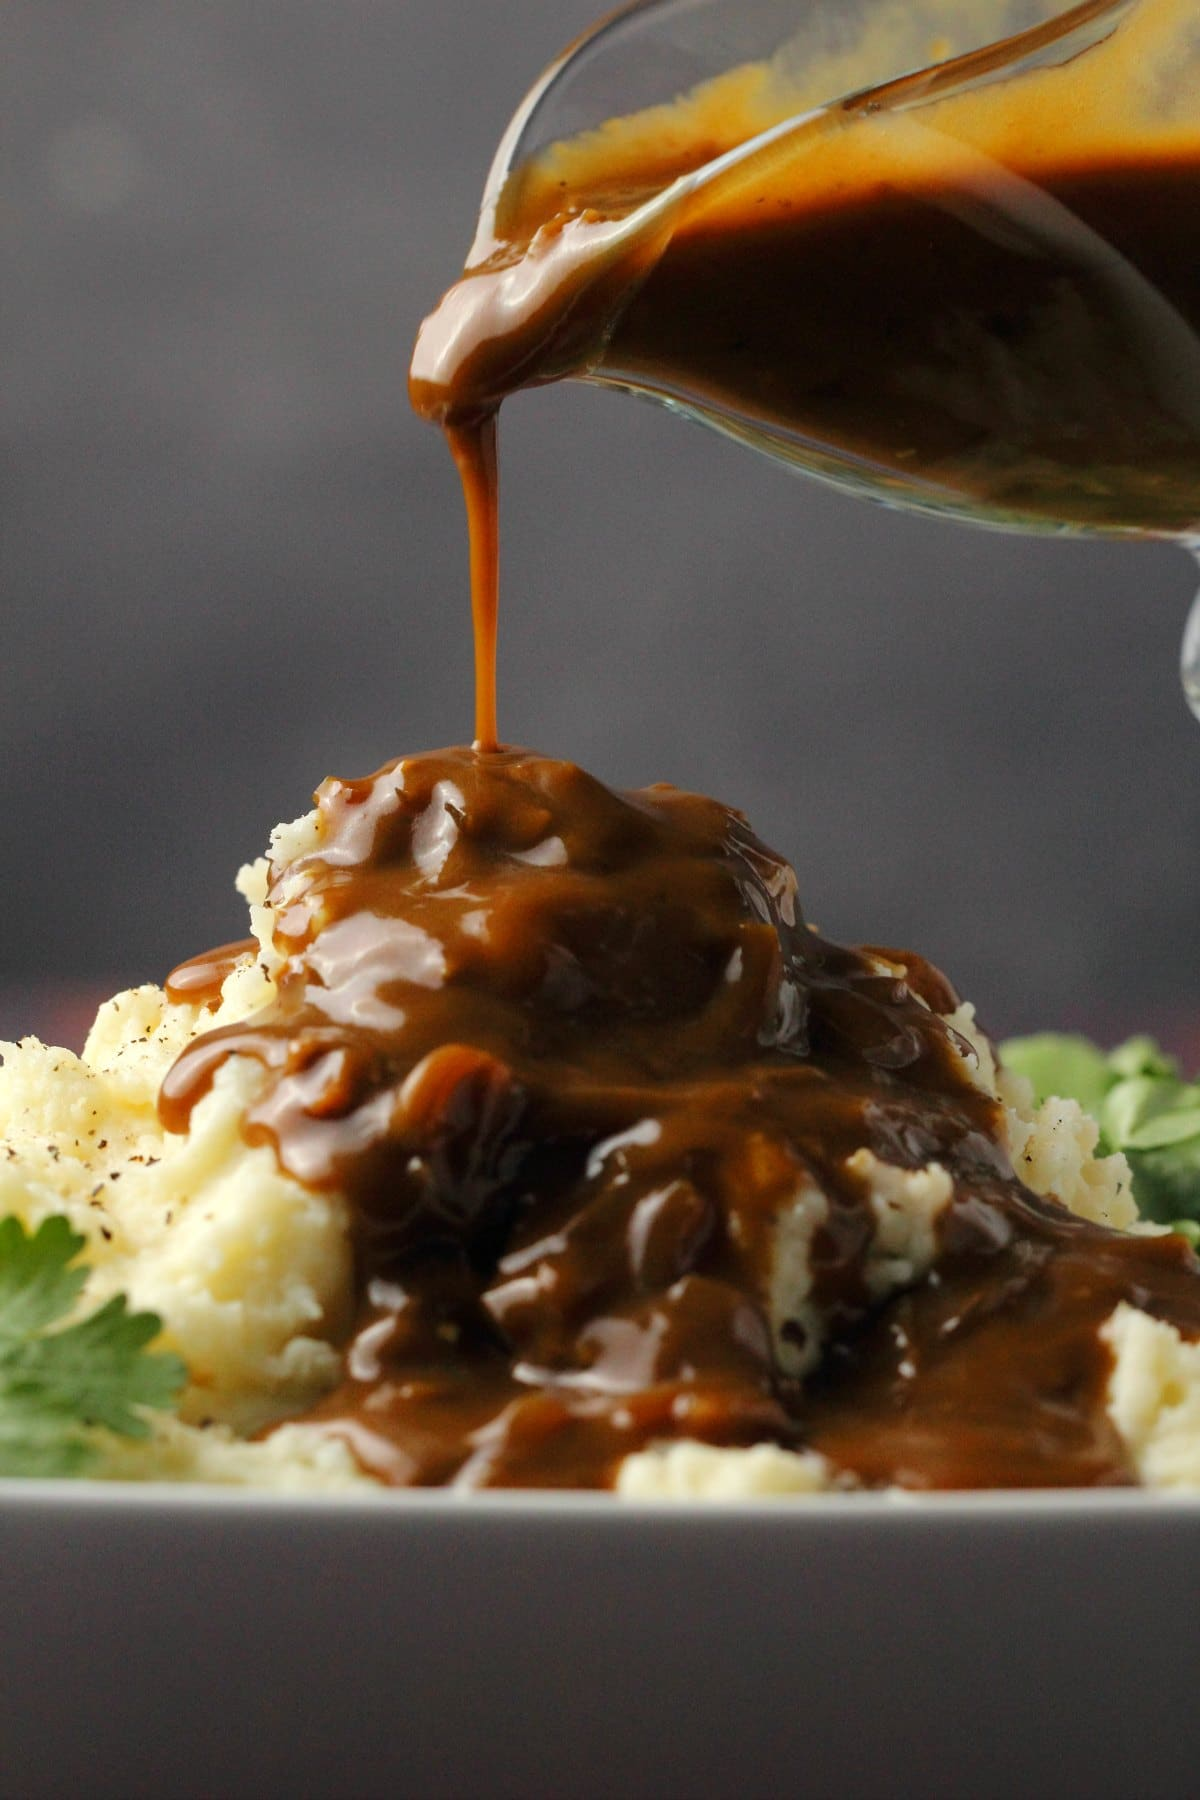 Vegan gravy pouring over mashed potatoes.